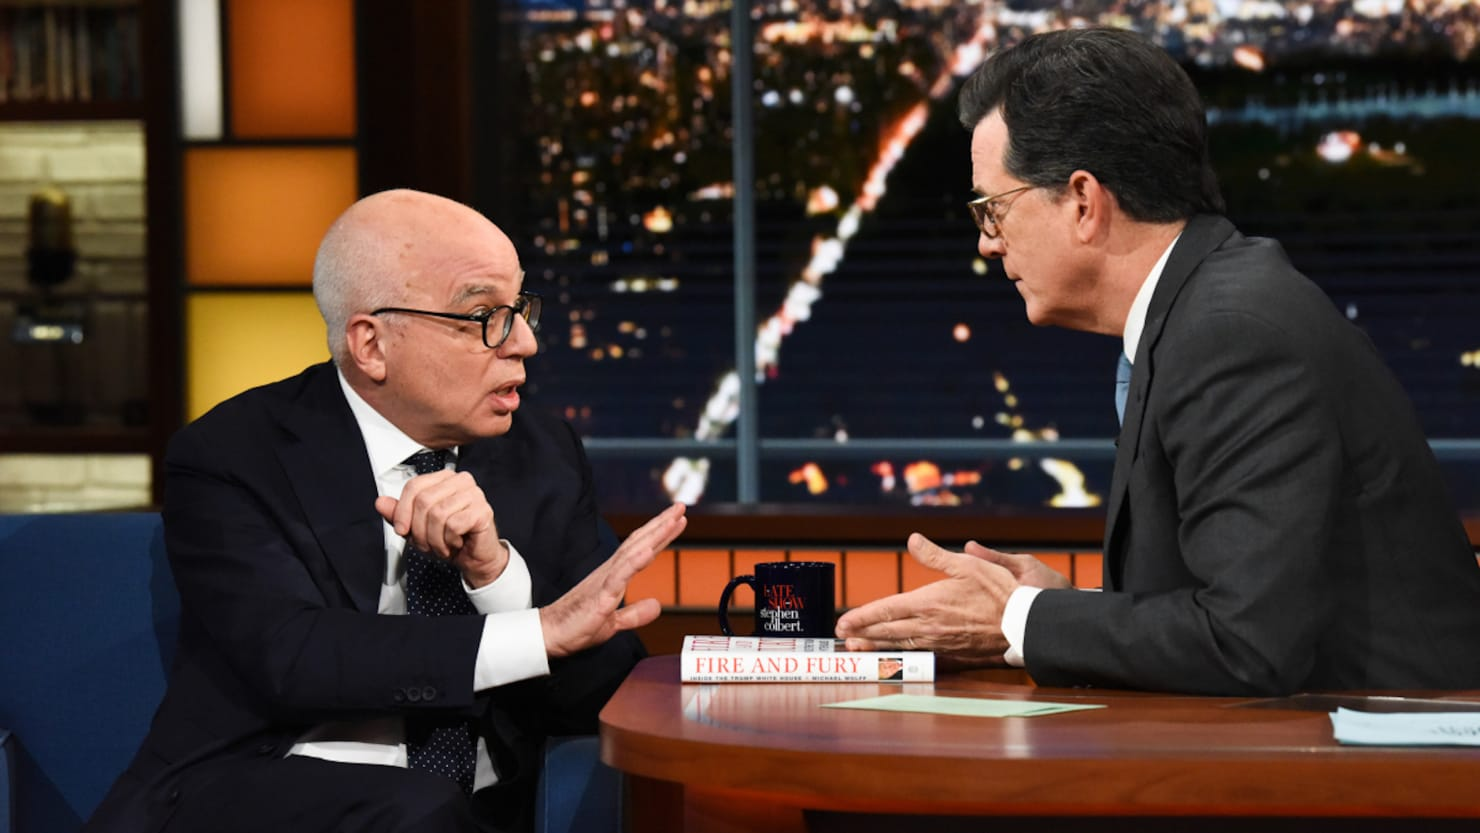 Stephen Colbert Grills Michael Wolff Over 'Fire and Fury': Why Not Release the Tapes?